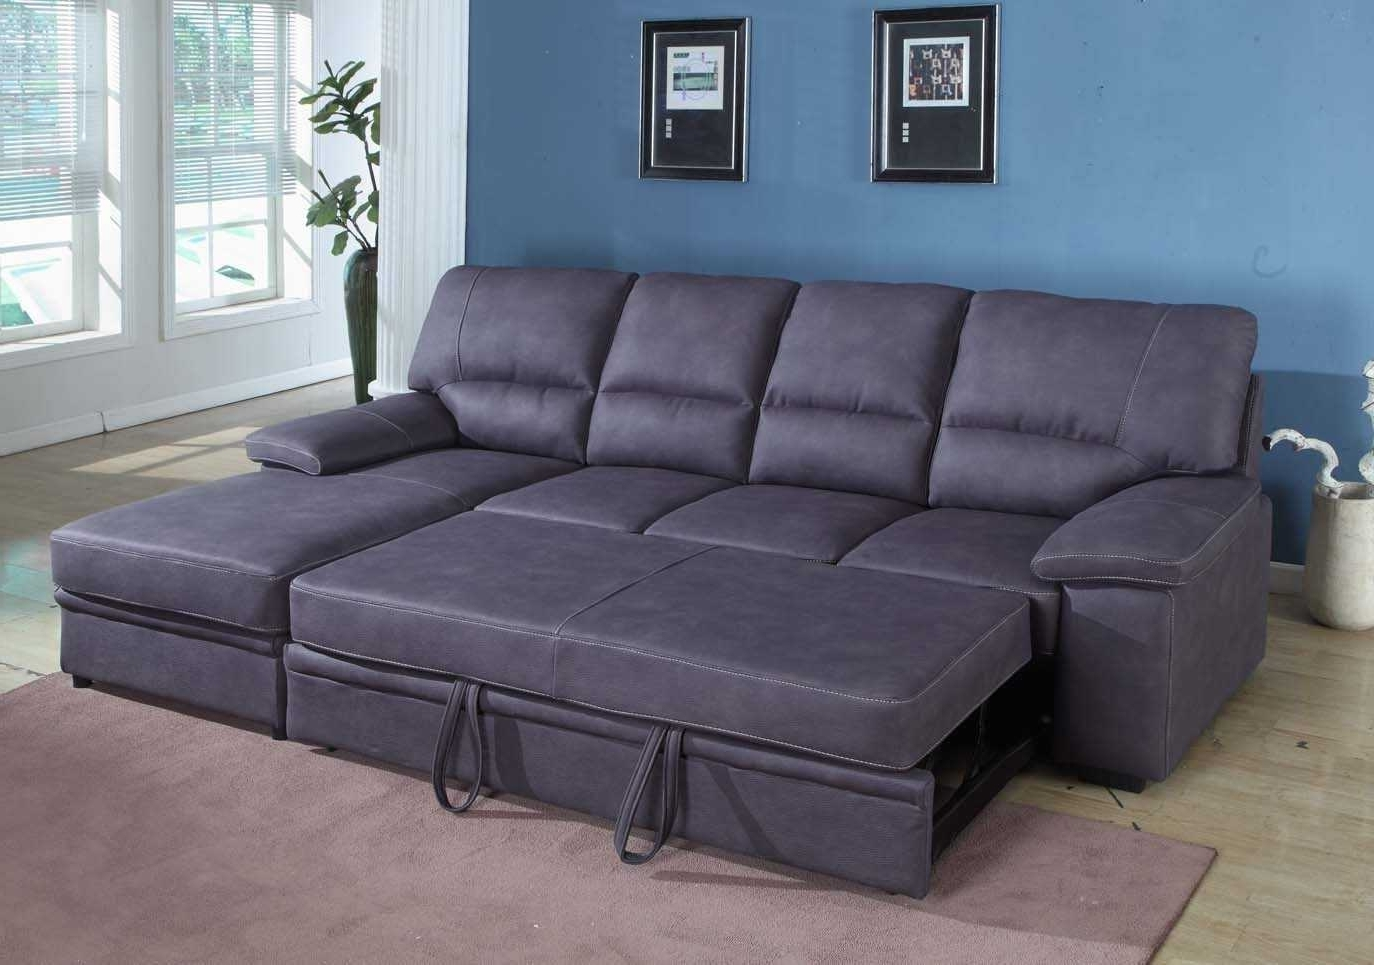 Trendy Gray Sectional Sofa With Chaise ~ Americanfurnituremanufacturer Throughout Grey Sectional Sofas With Chaise (View 14 of 15)